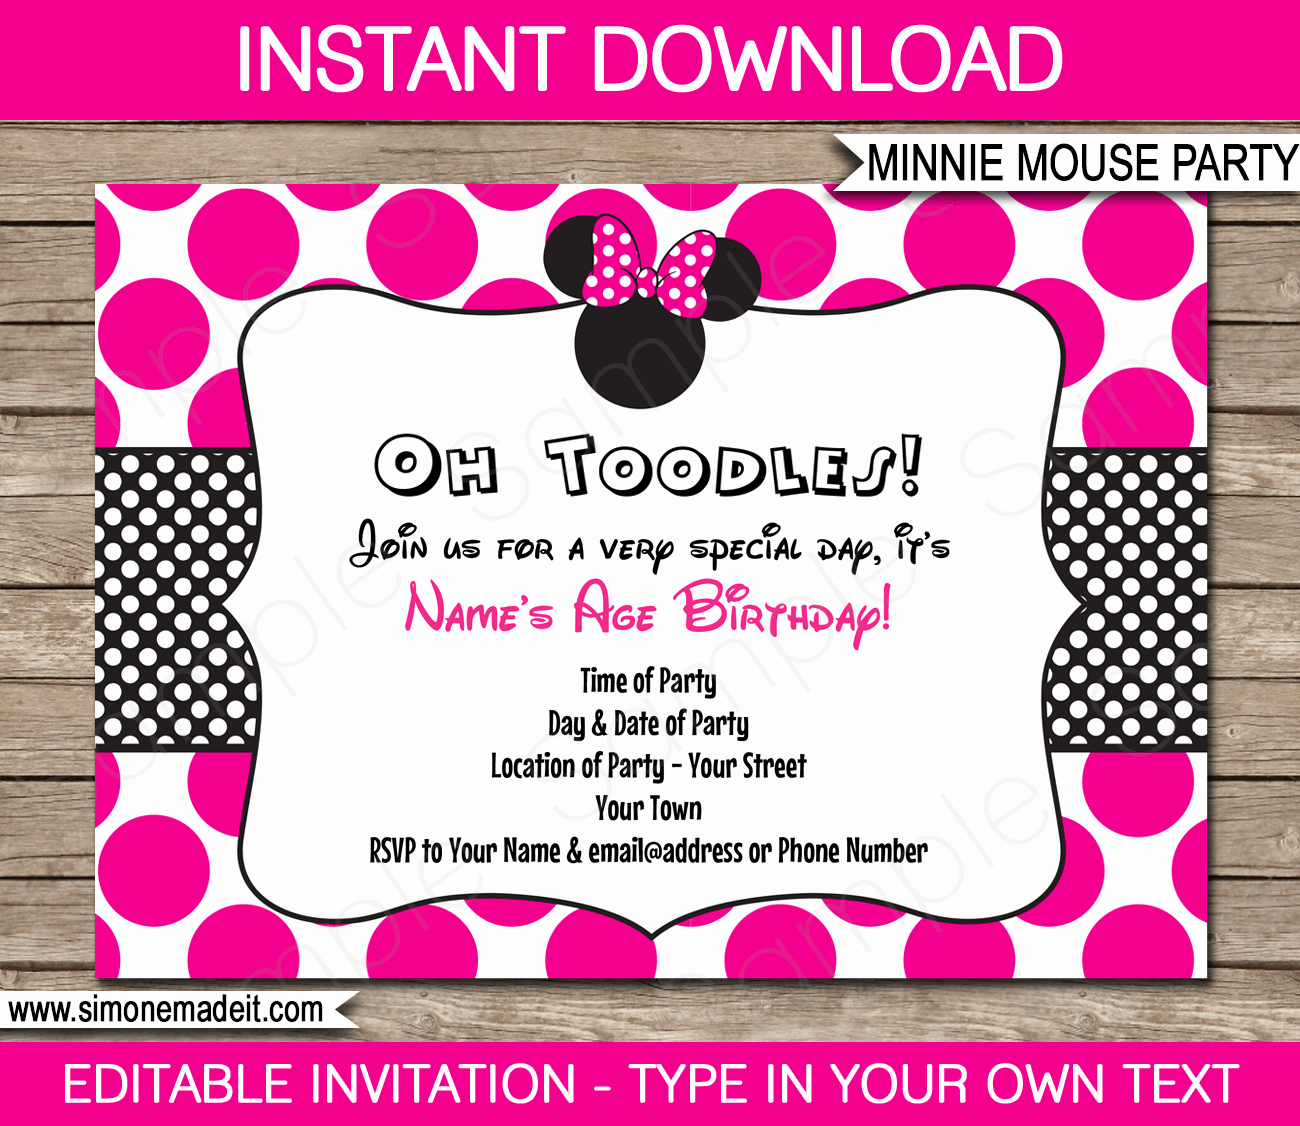 Invitation format for Birthday Party Awesome Minnie Mouse Party Invitations Template